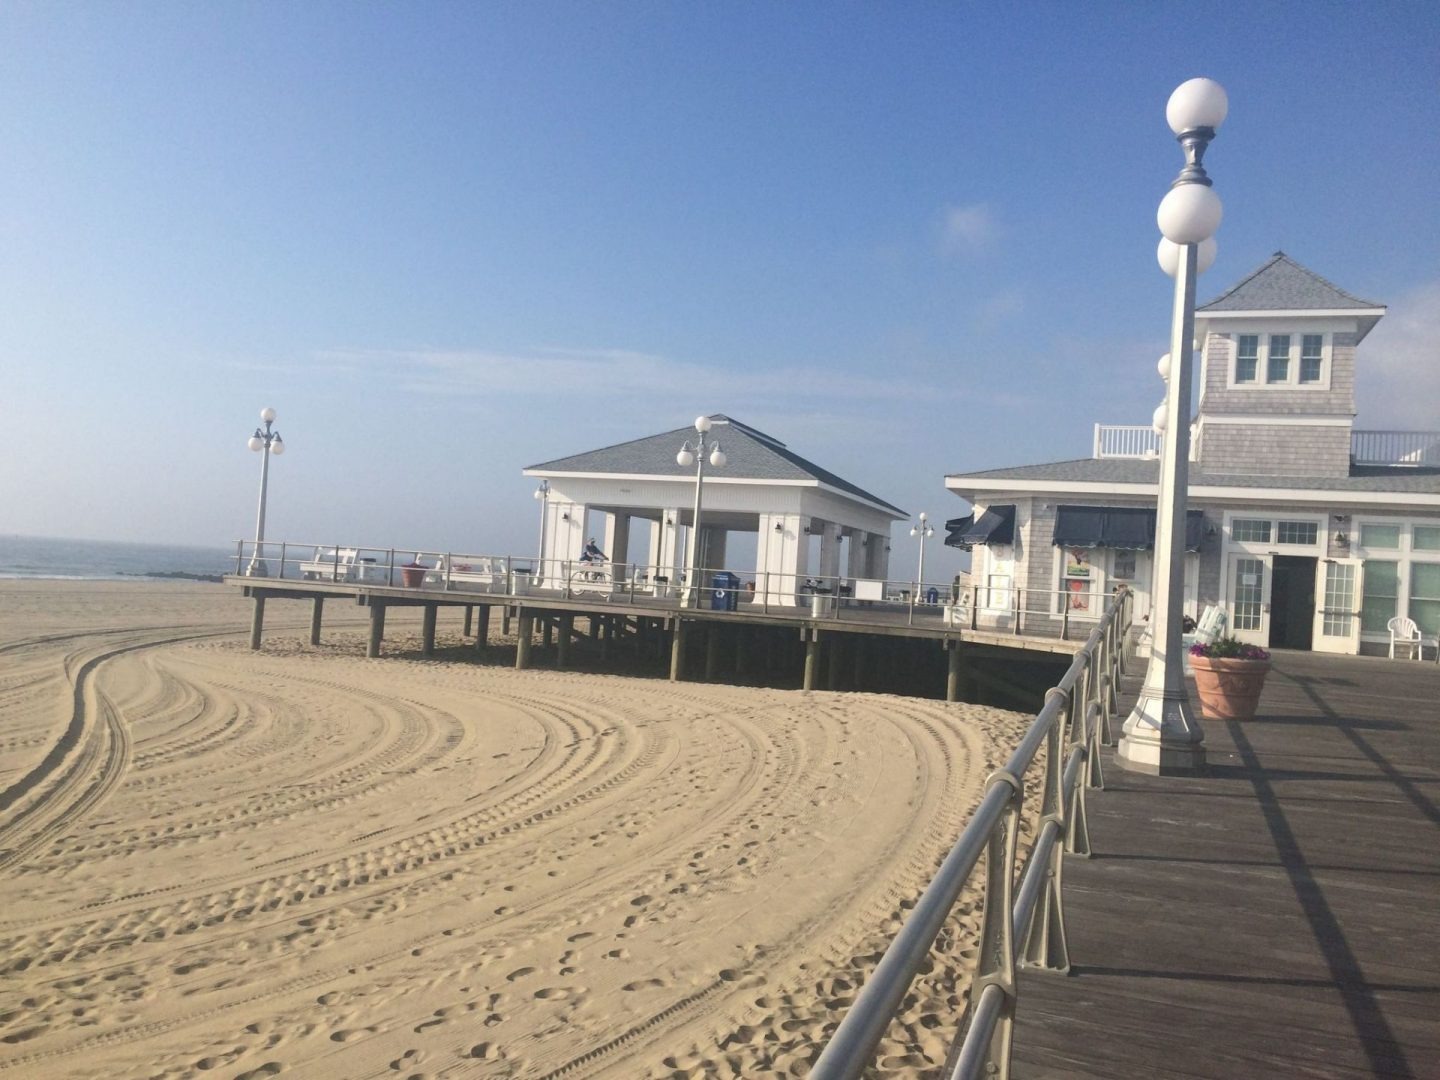 Summer in USA – Avon by the sea